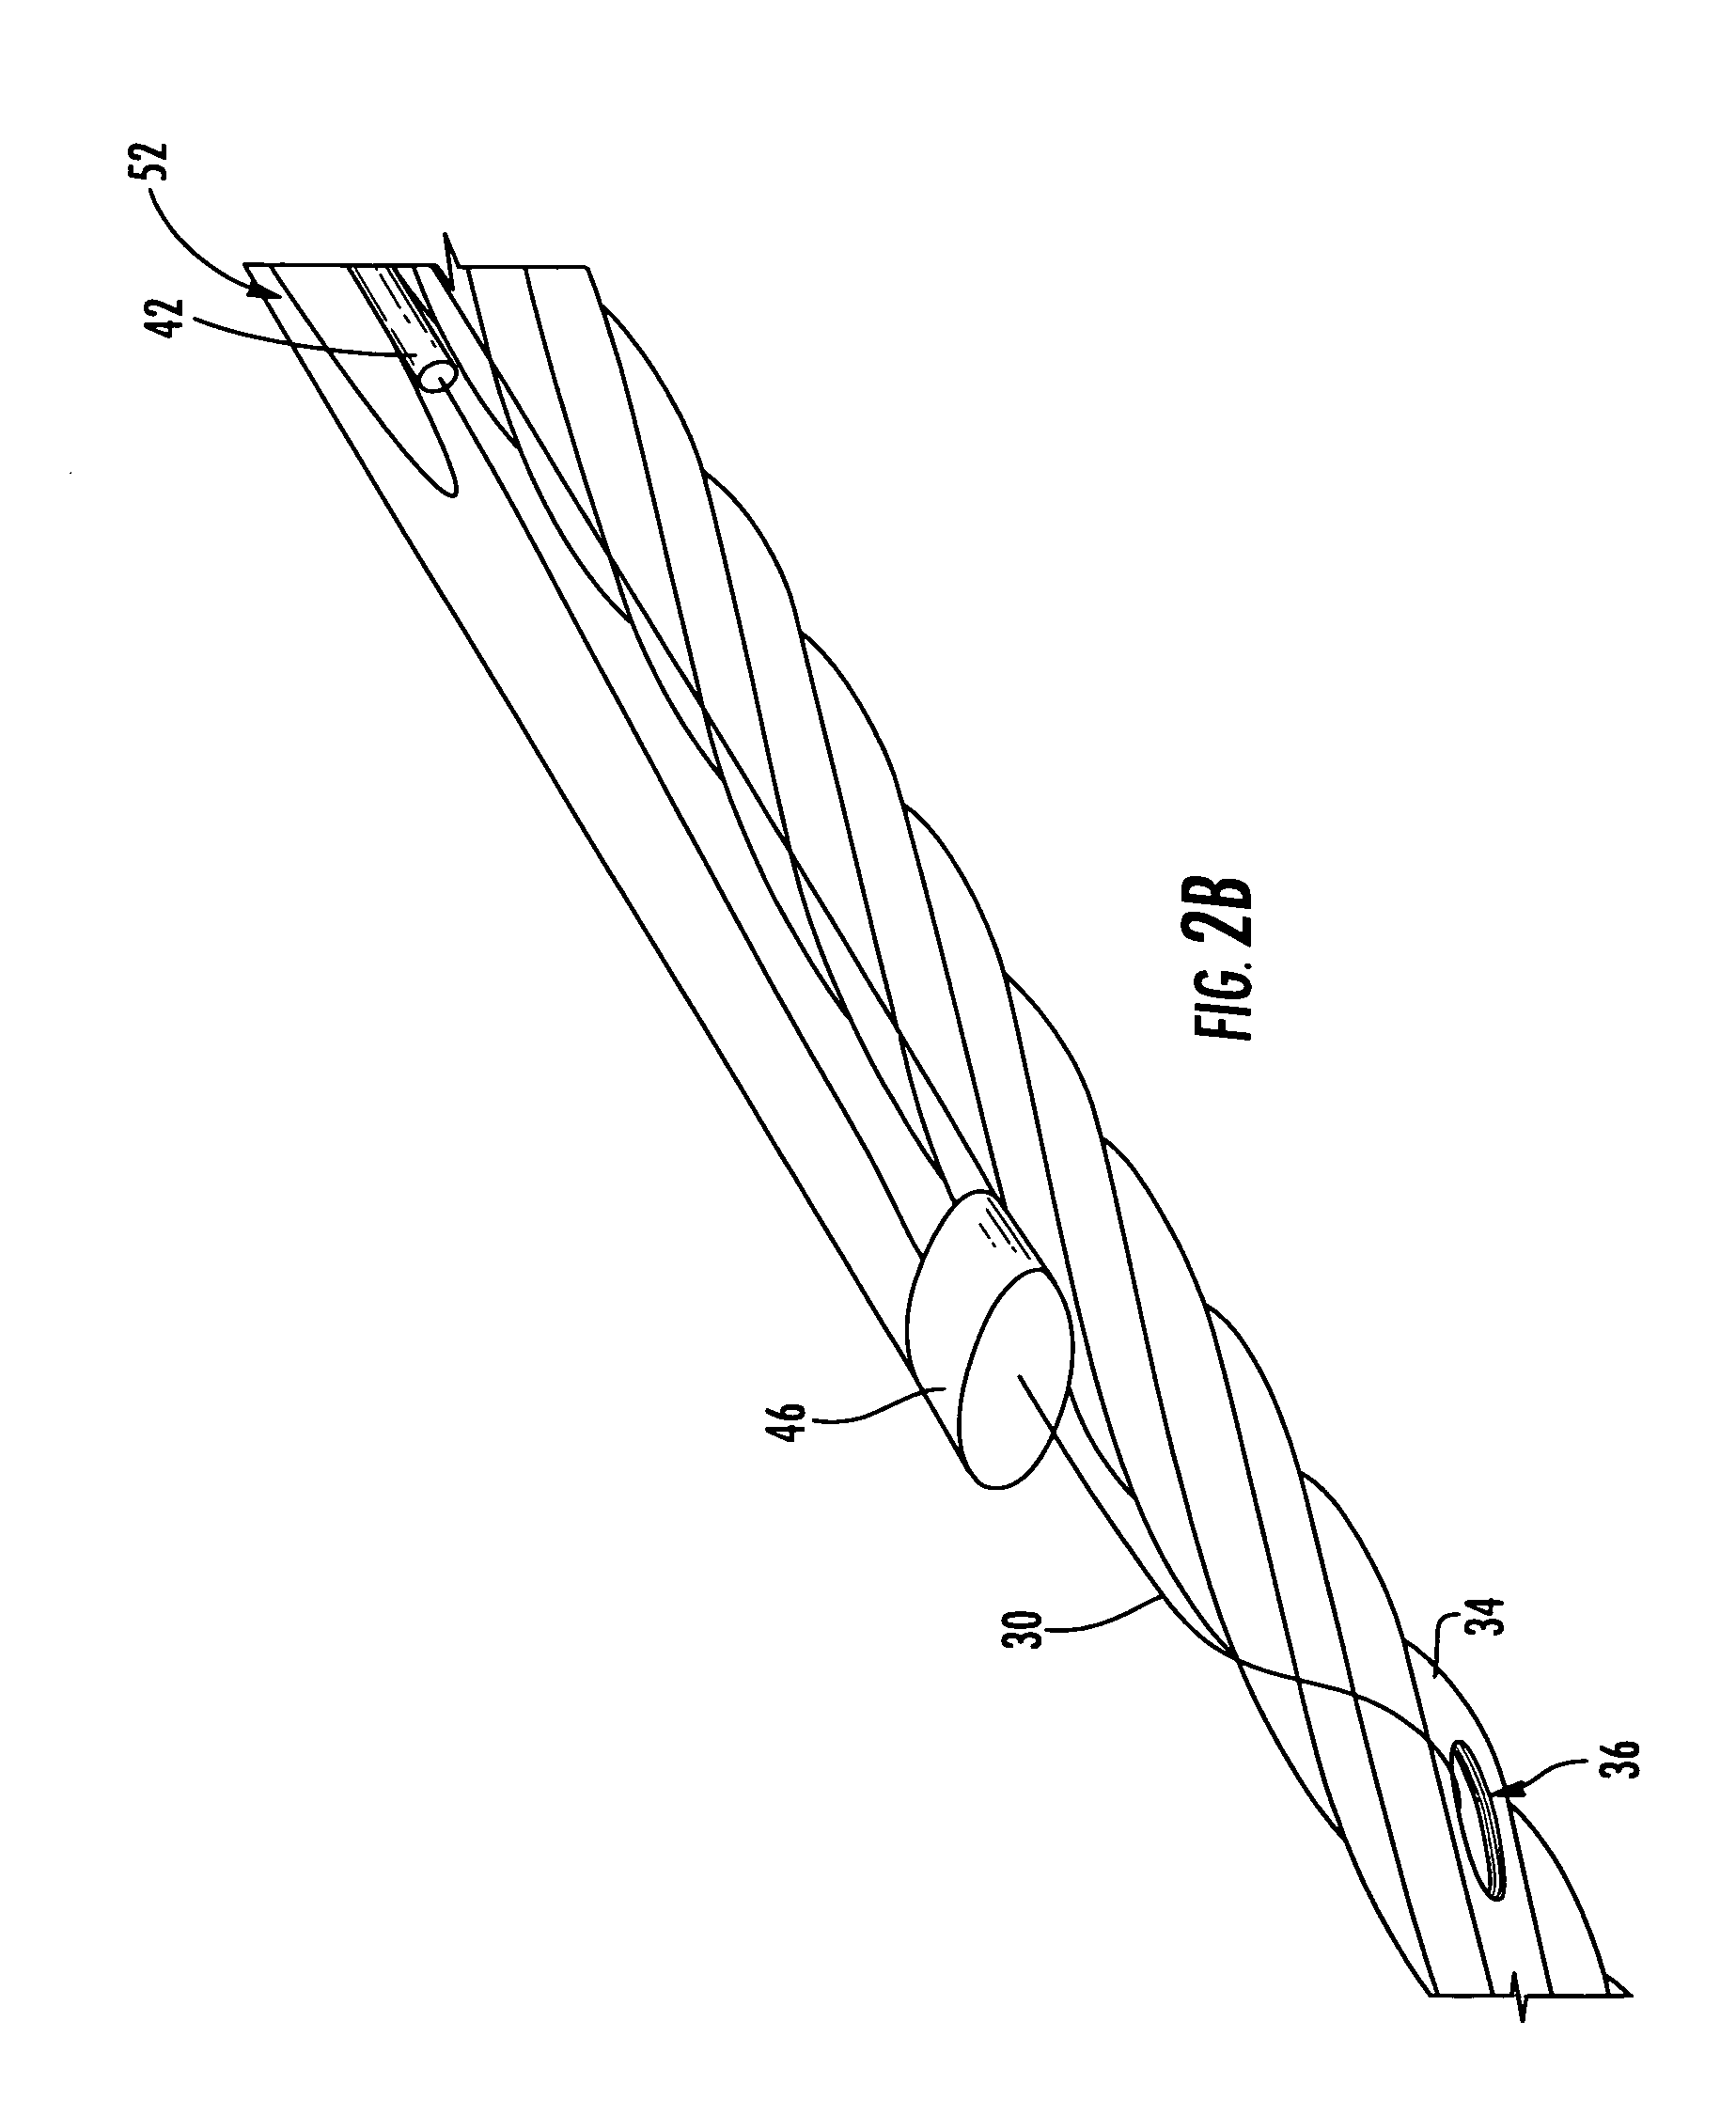 patent us20080112675 - cable assembly having bend performance optical fiber slack coil